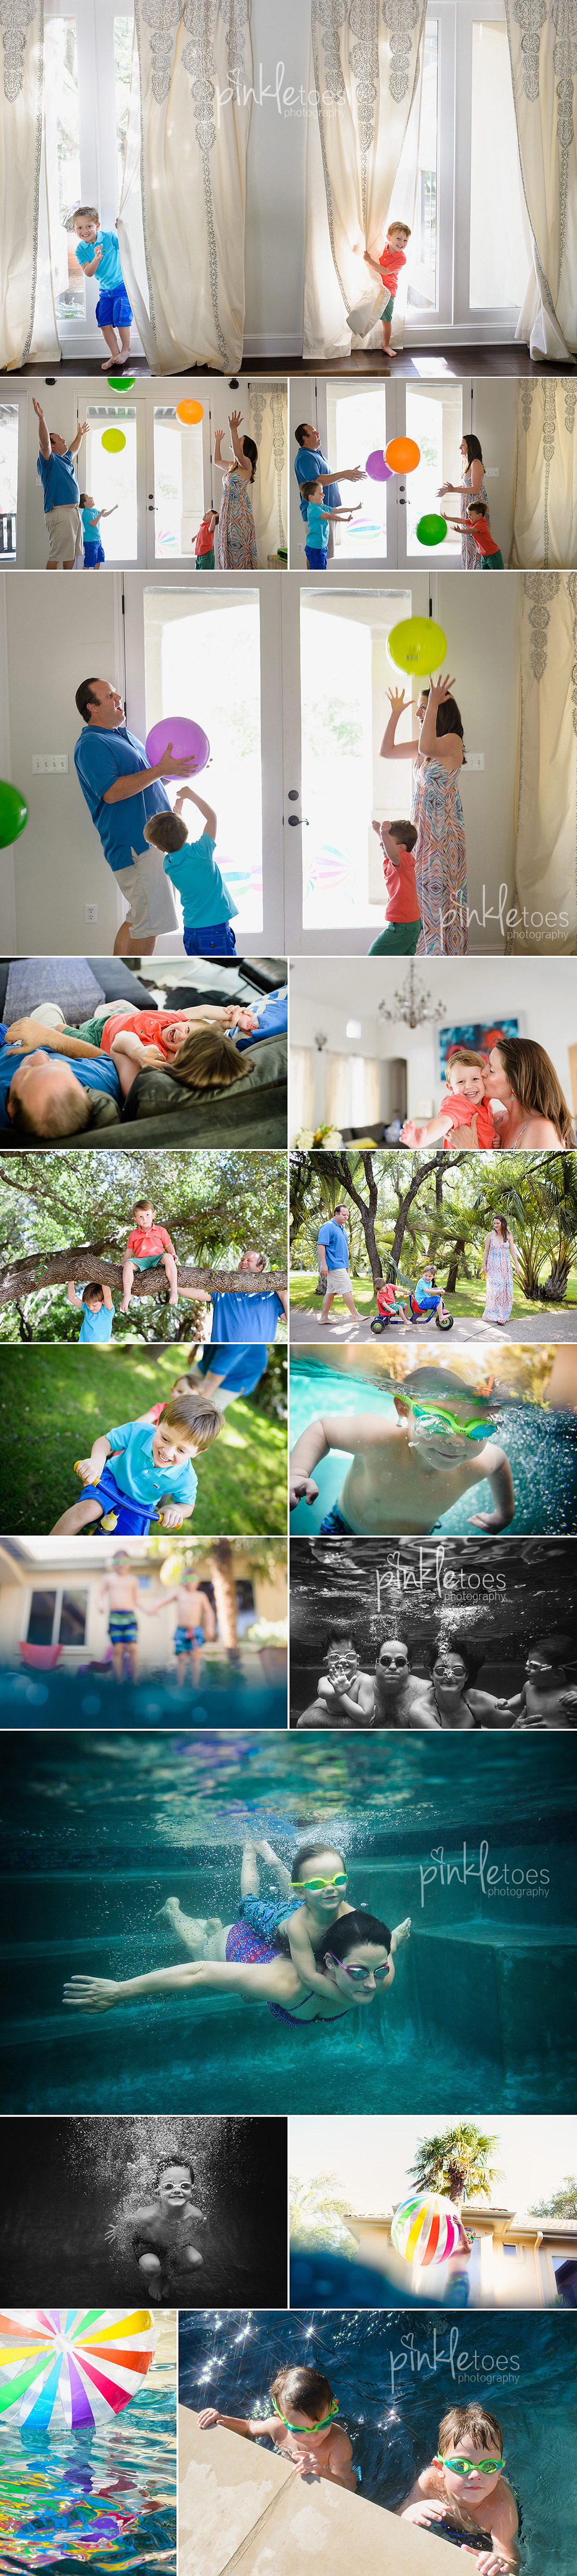 ha-pinkle-toes-austin-family-kids-lifestyle-photography-underwater-photo-session-home-B